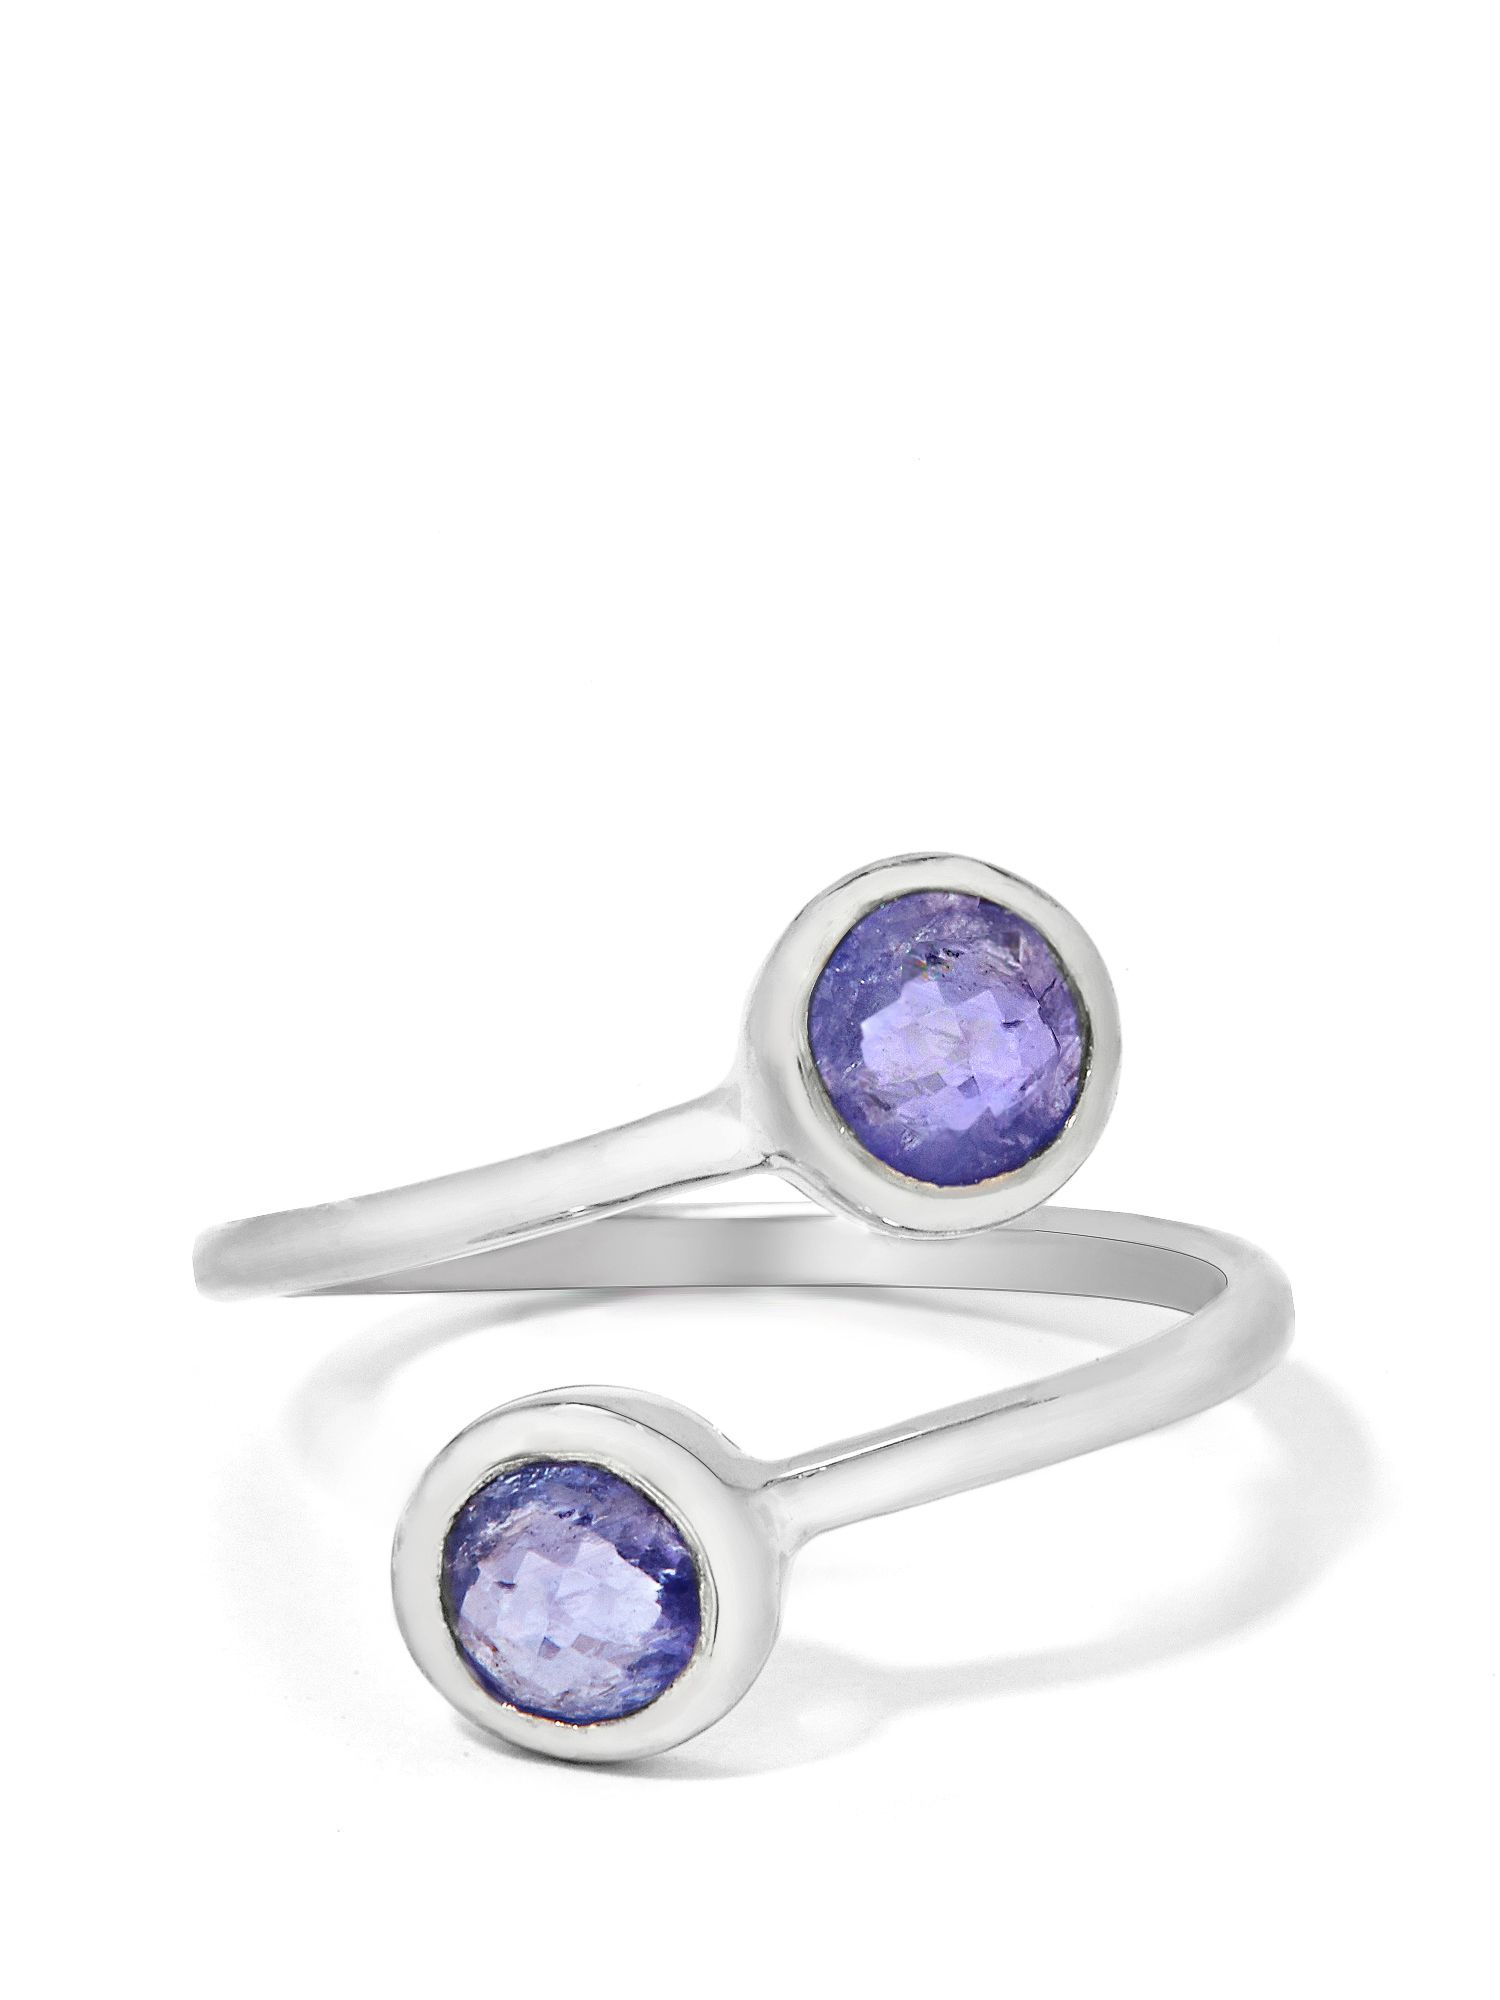 Gemporia Tanzanite sterling silver ring, Silver Buy for: GBP20.00 House of Fraser Currently Offers: Gemporia Tanzanite sterling silver ring, Silver from Store Category: Accessories > Jewellery > Rings for just: GBP20.00 Check more at https://nationaldeal.co.uk/gemporia-tanzanite-sterling-silver-ring-silver-buy-for-gbp20-00/